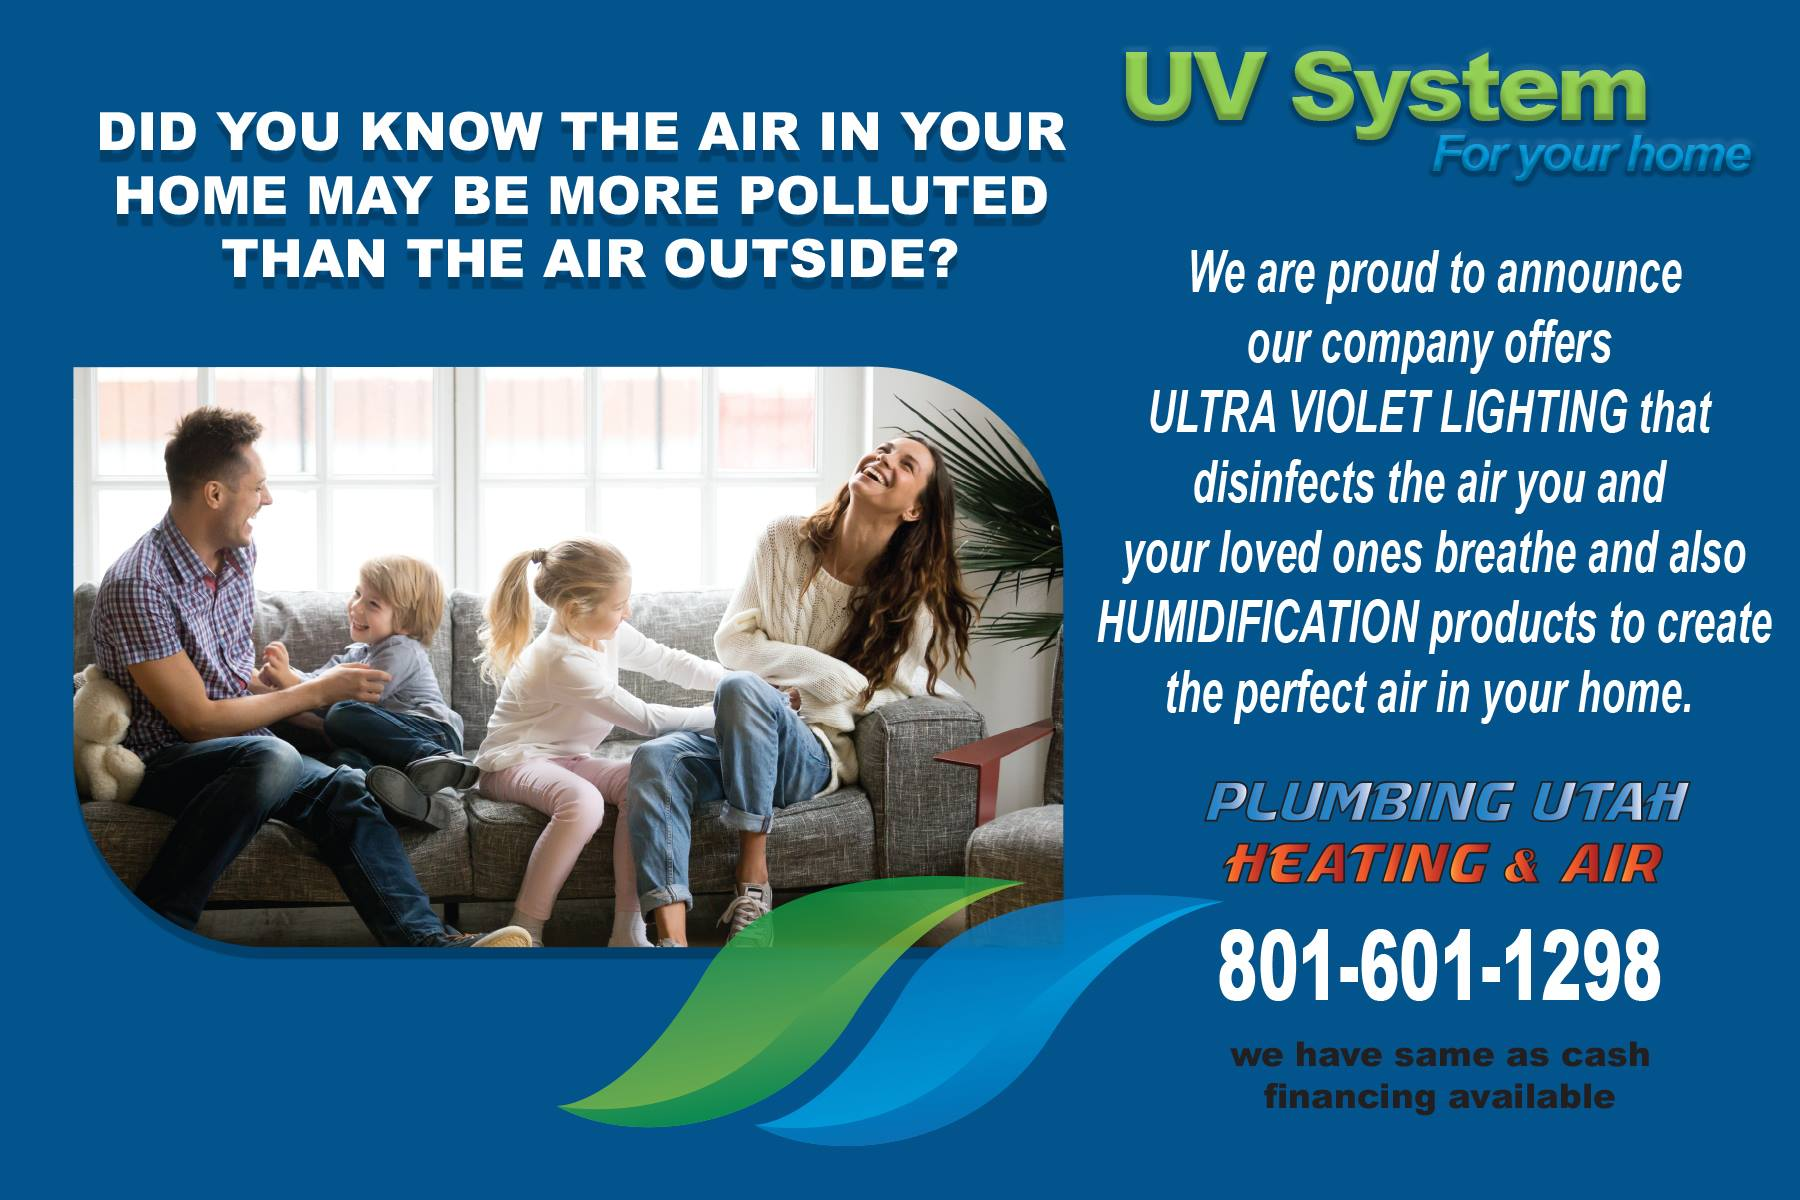 uv-lighting-system-utah